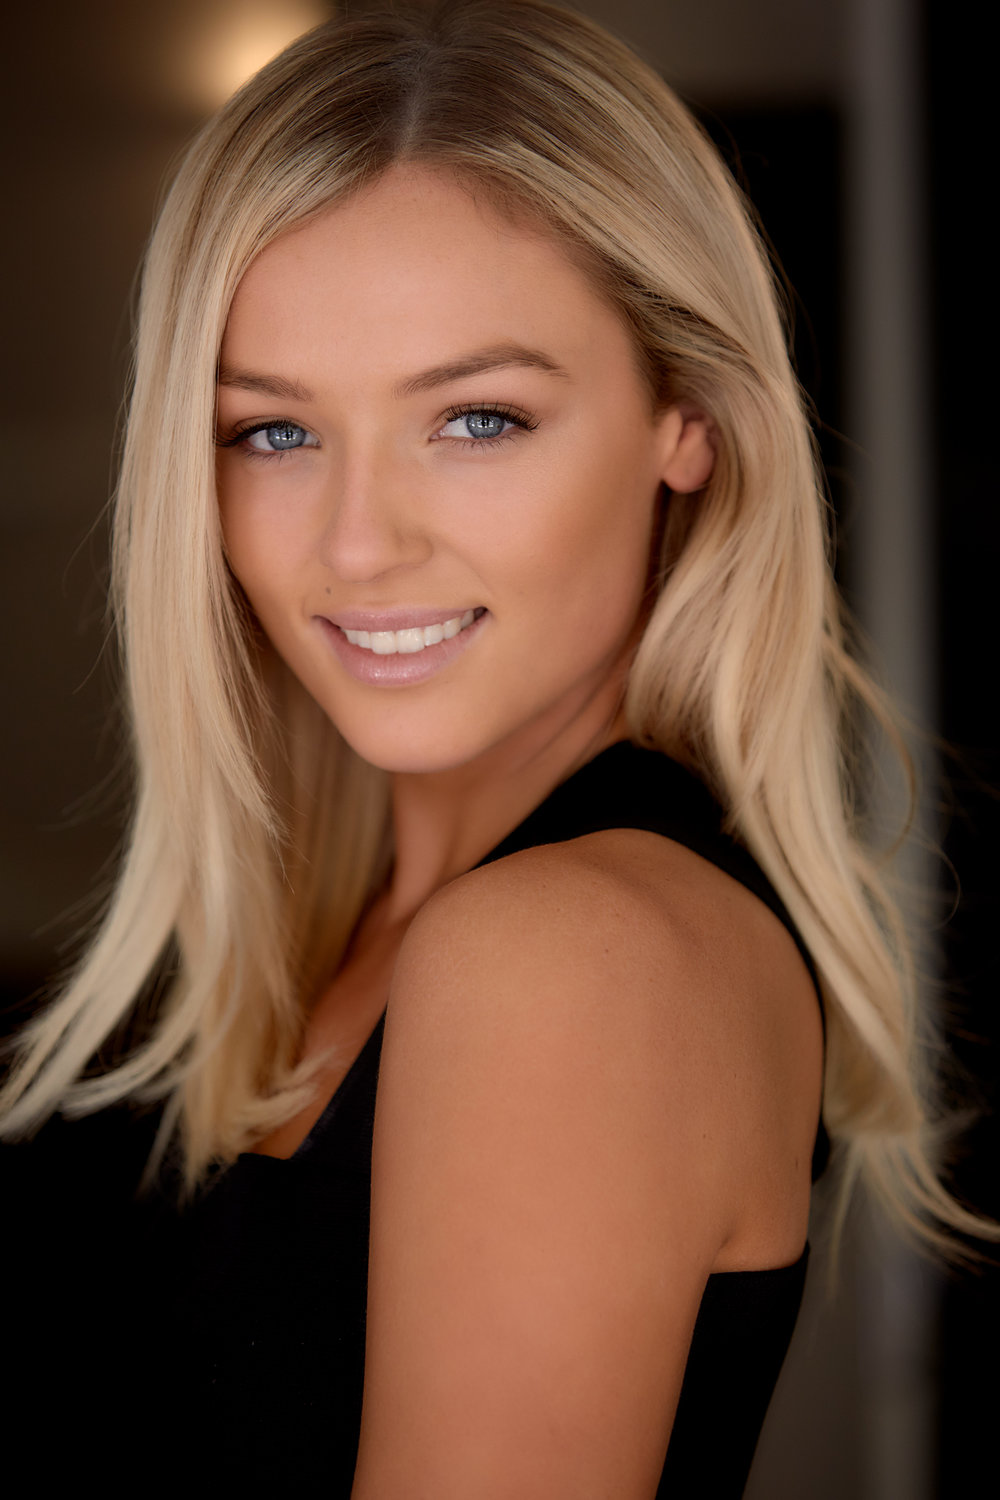 NICK PROKOP PHOTOGRAPHY SYDNEY HEADSHOT PHOTOGR.jpg